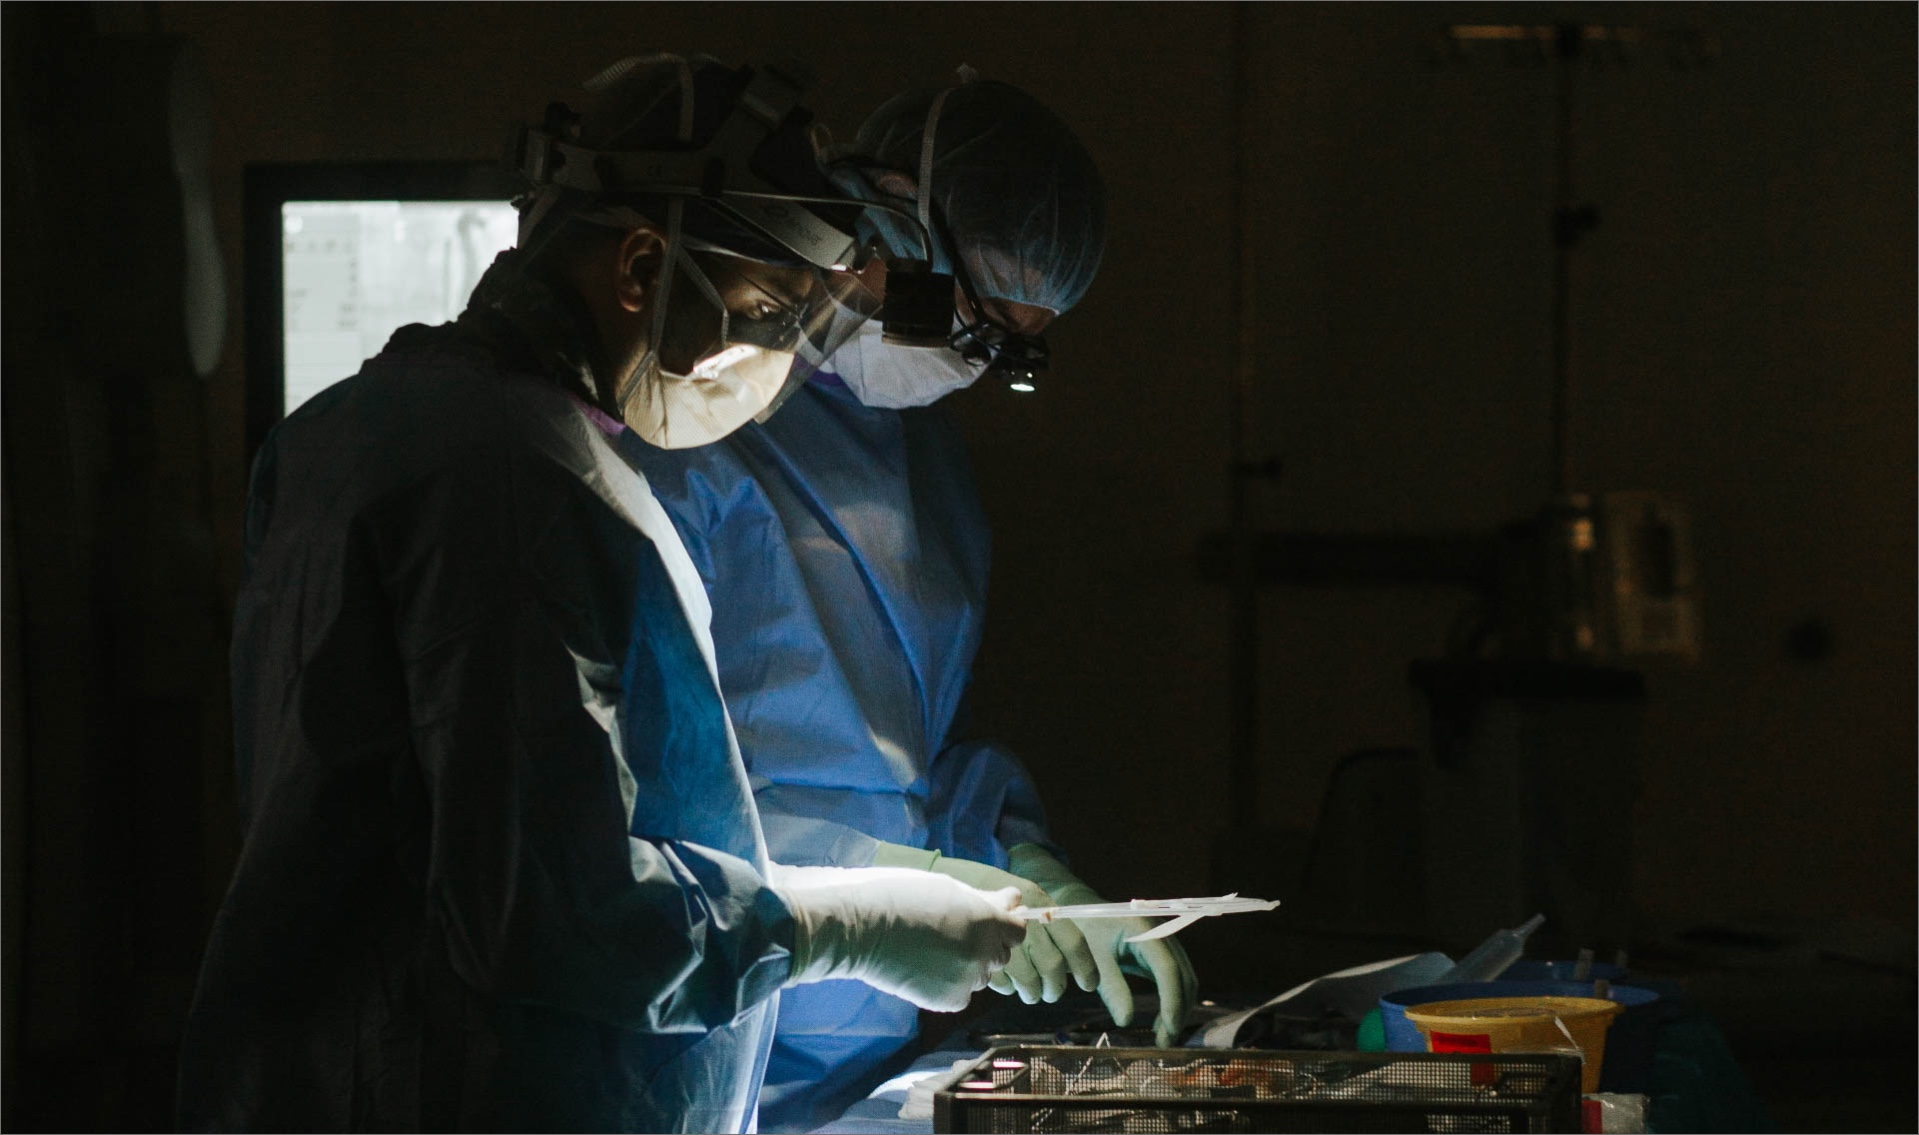 Two surgeons gather their tools for surgery. Both are wearing scrubs, masks, goggles, and gloves. The photo is dark, with dramatic lighting on their tools.